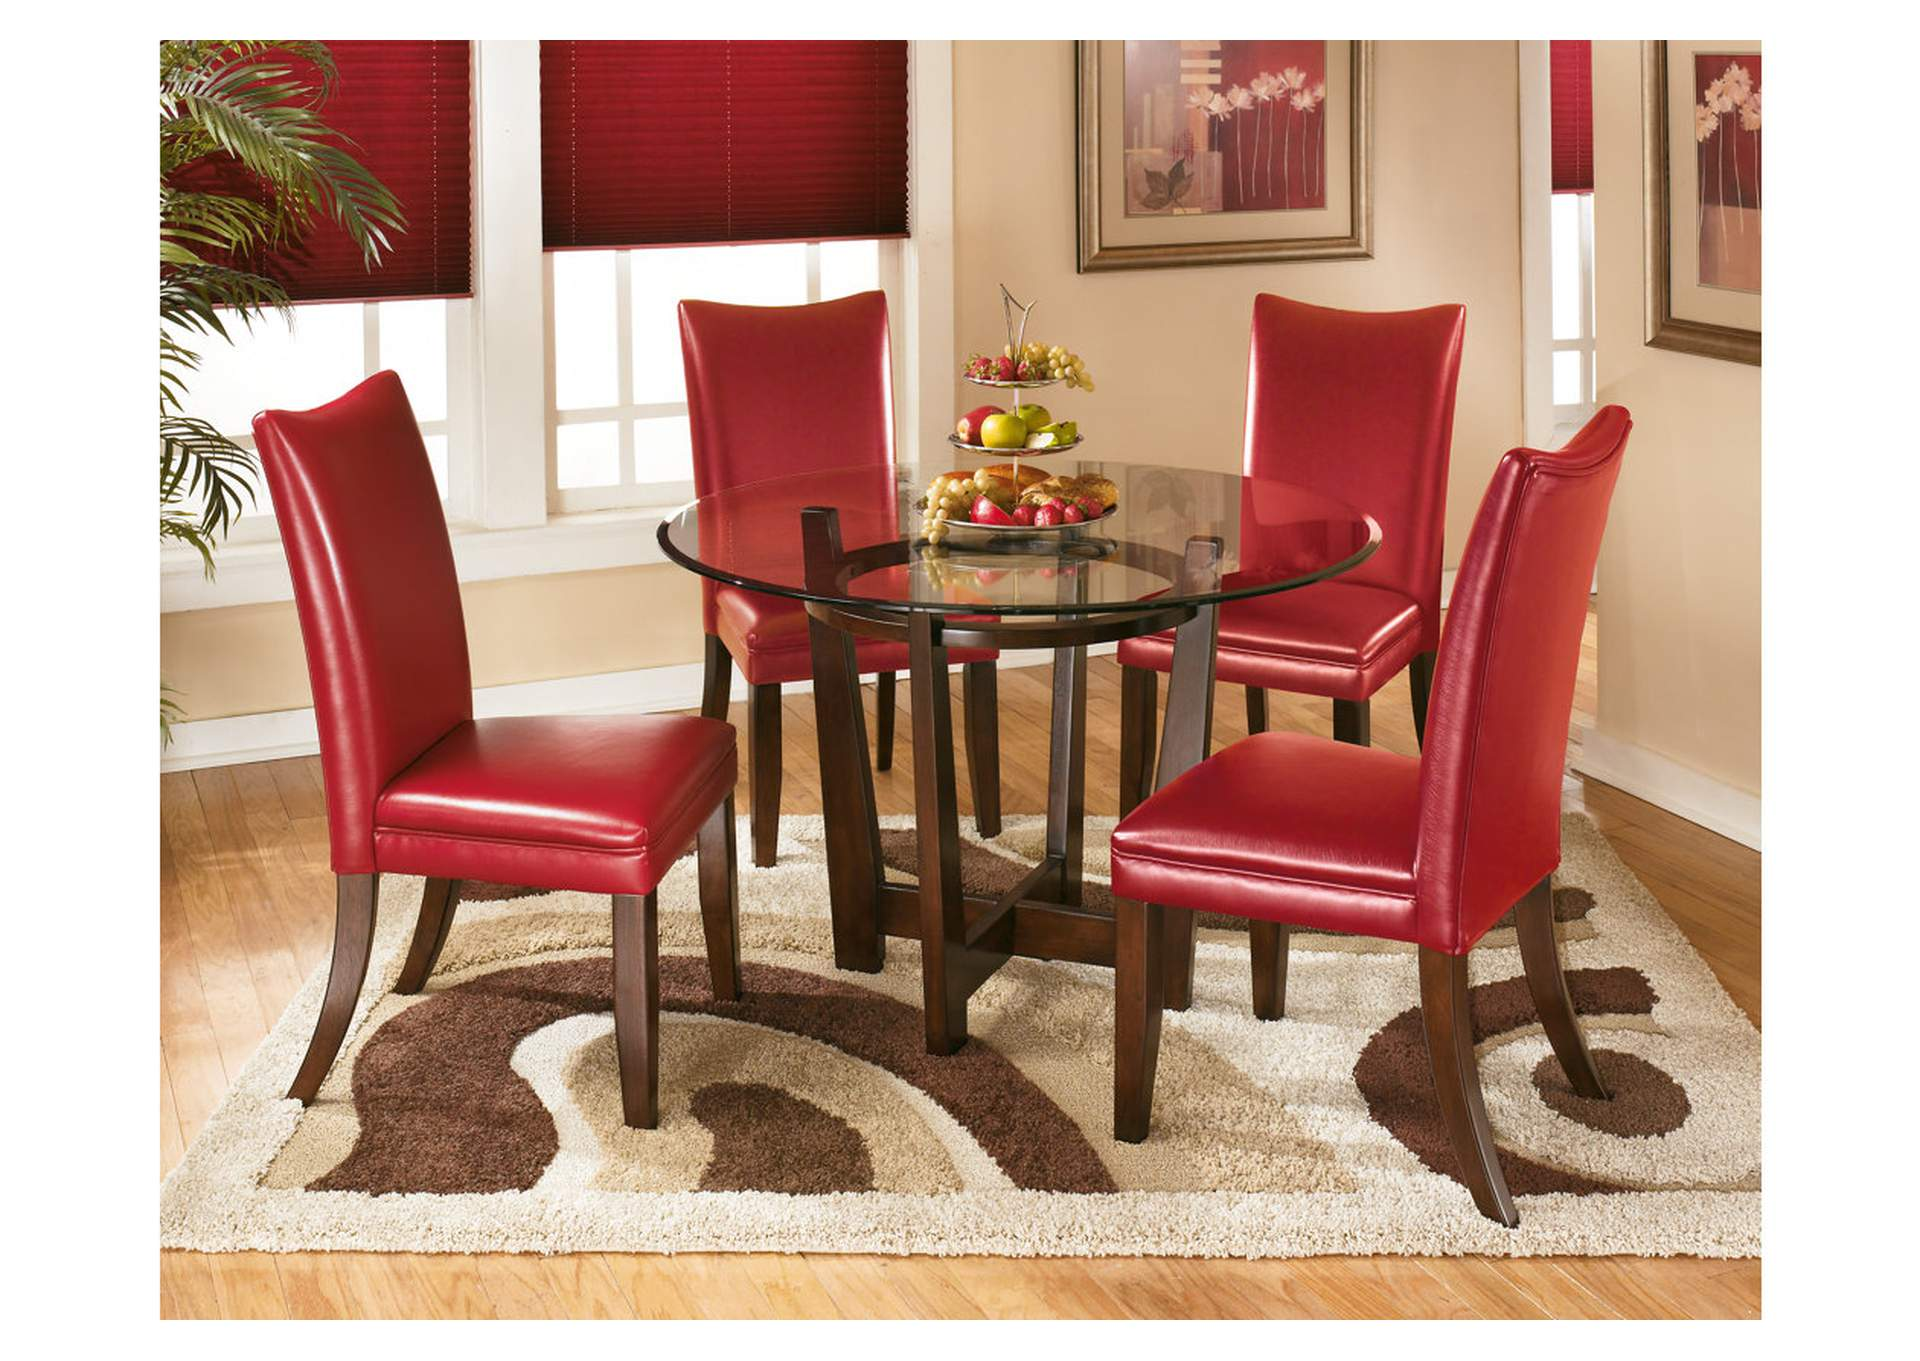 Charell Round Dining Table W 4 Red Side ChairsSignature Design By Ashley